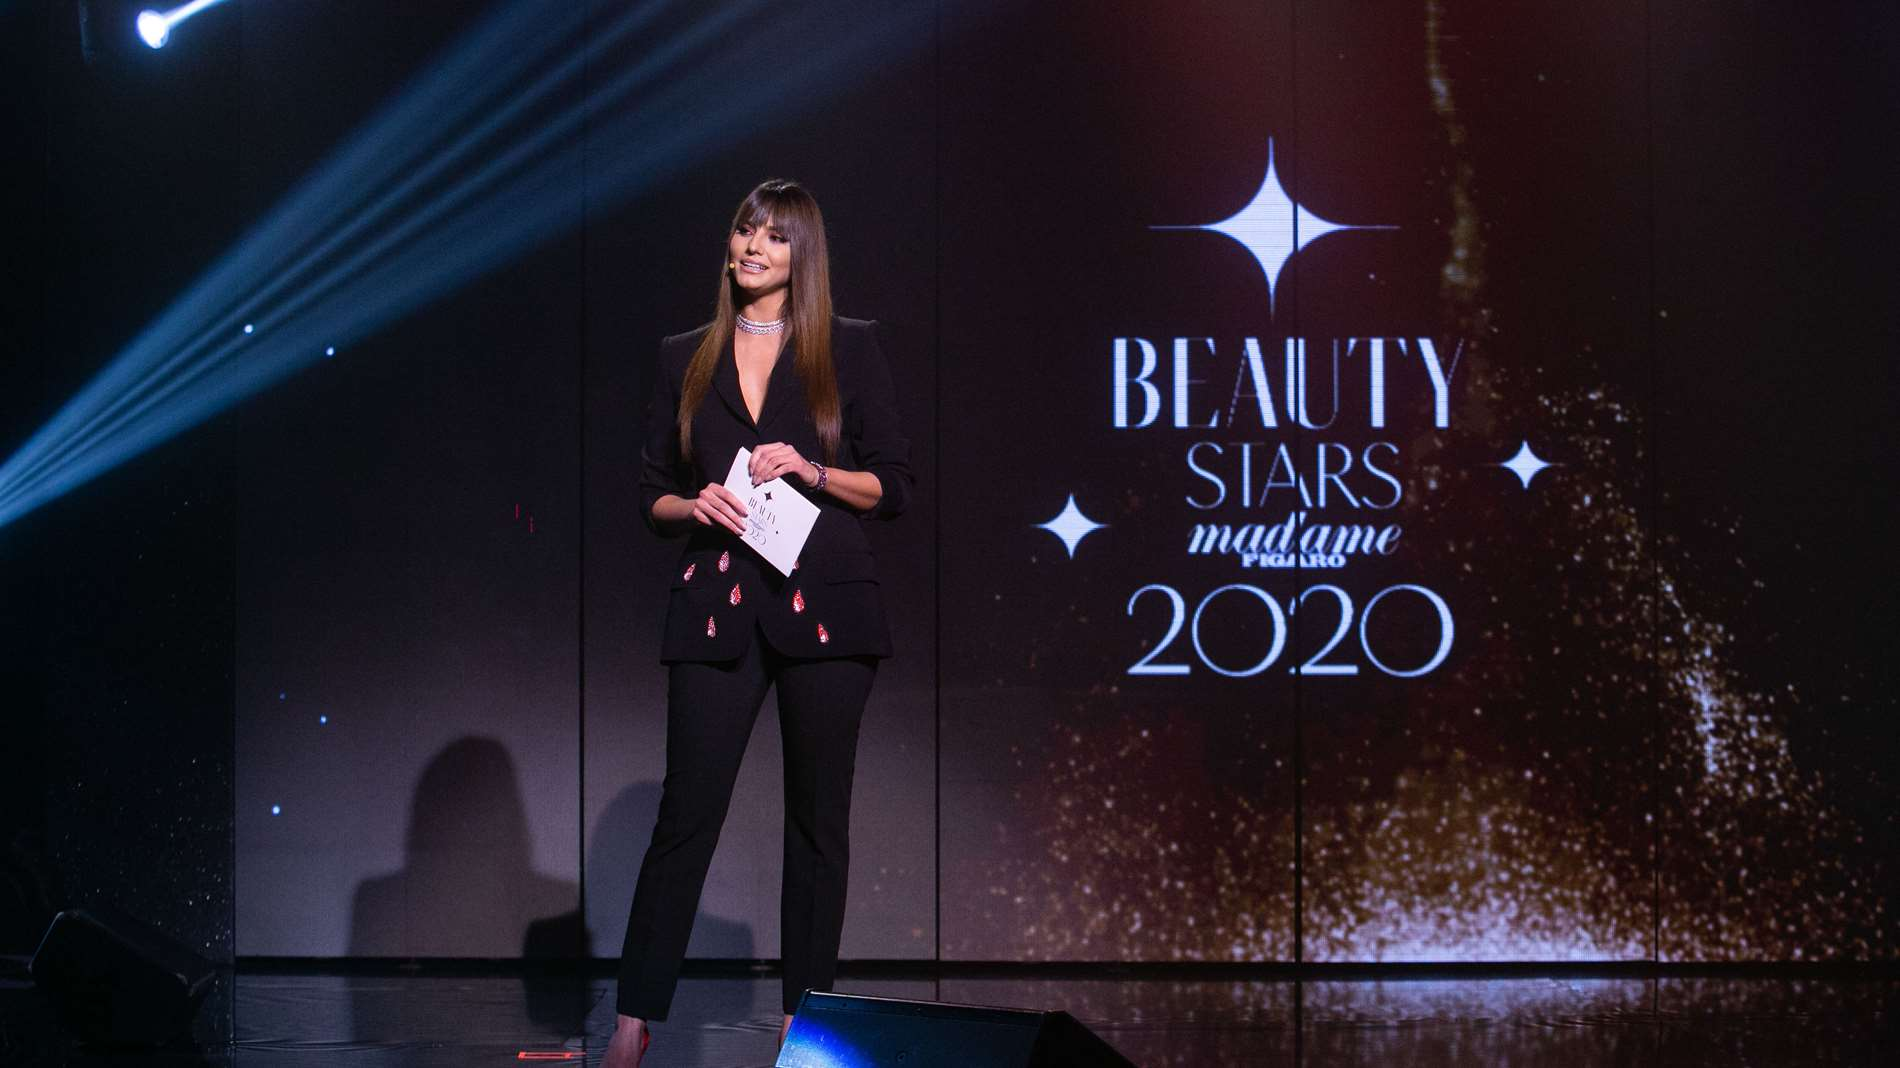 Beauty Stars by Madame Figaro 2020 | Ποια προϊόντα κέρδισαν και όλες οι απονομές